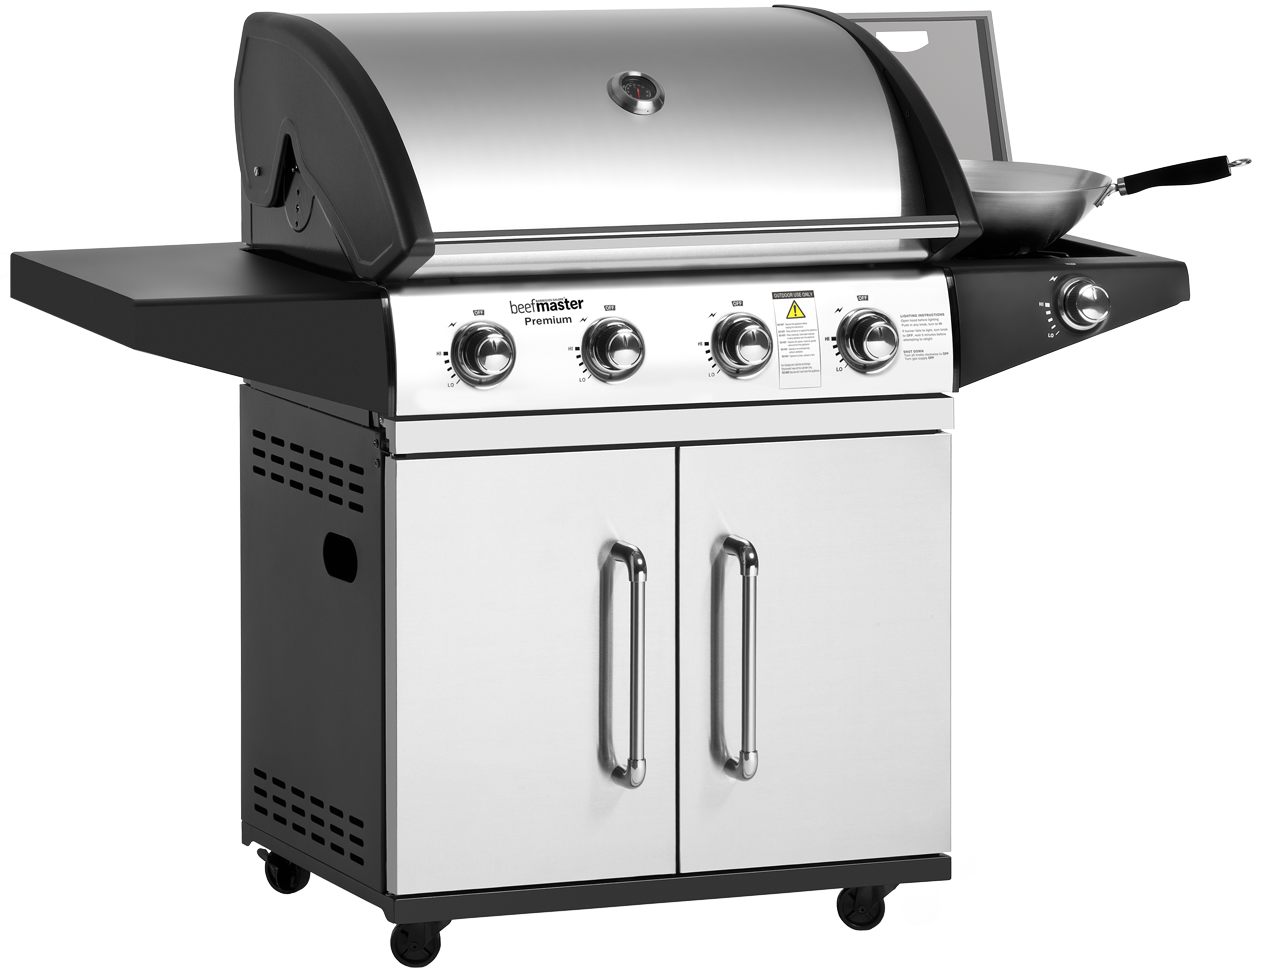 Beefmaster Premium BBQ with Side Burner Reviews ...